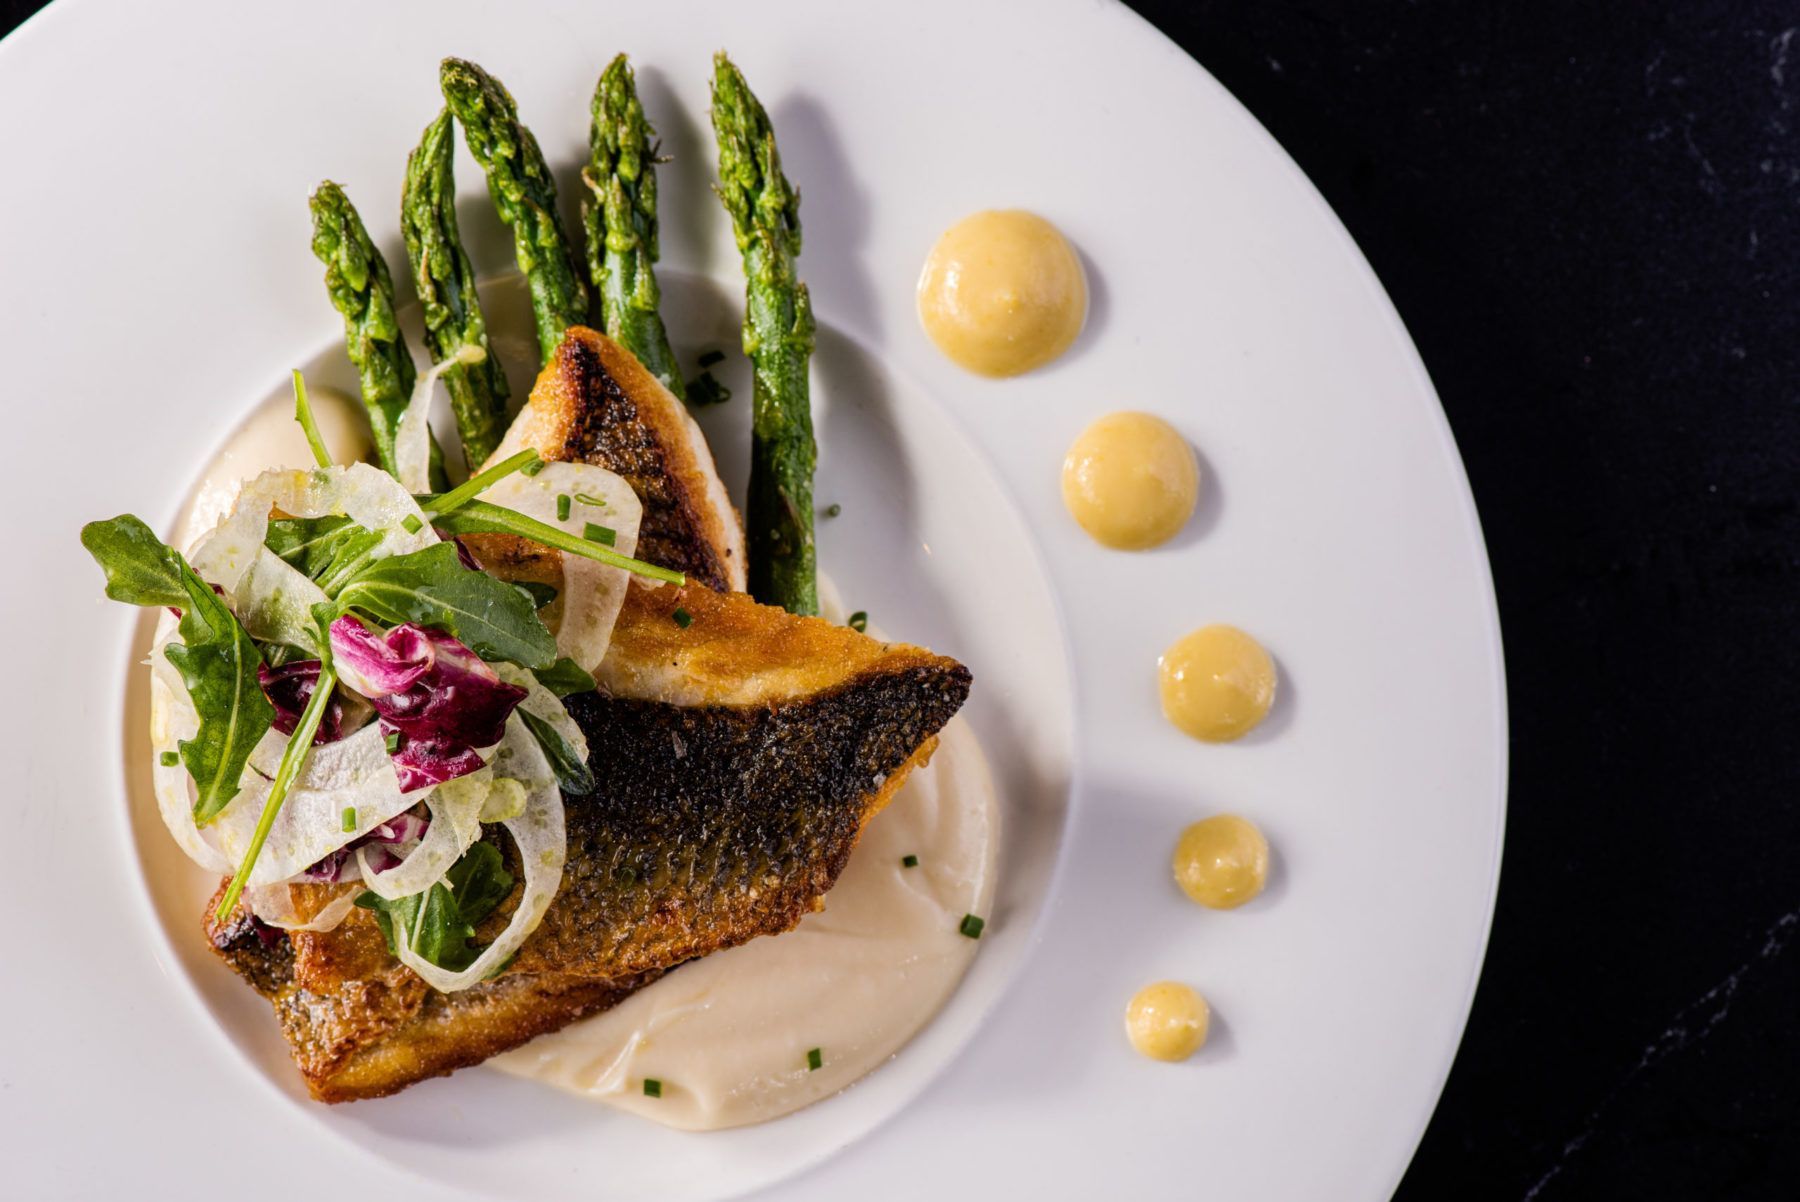 Branzino on a plate with asparagus